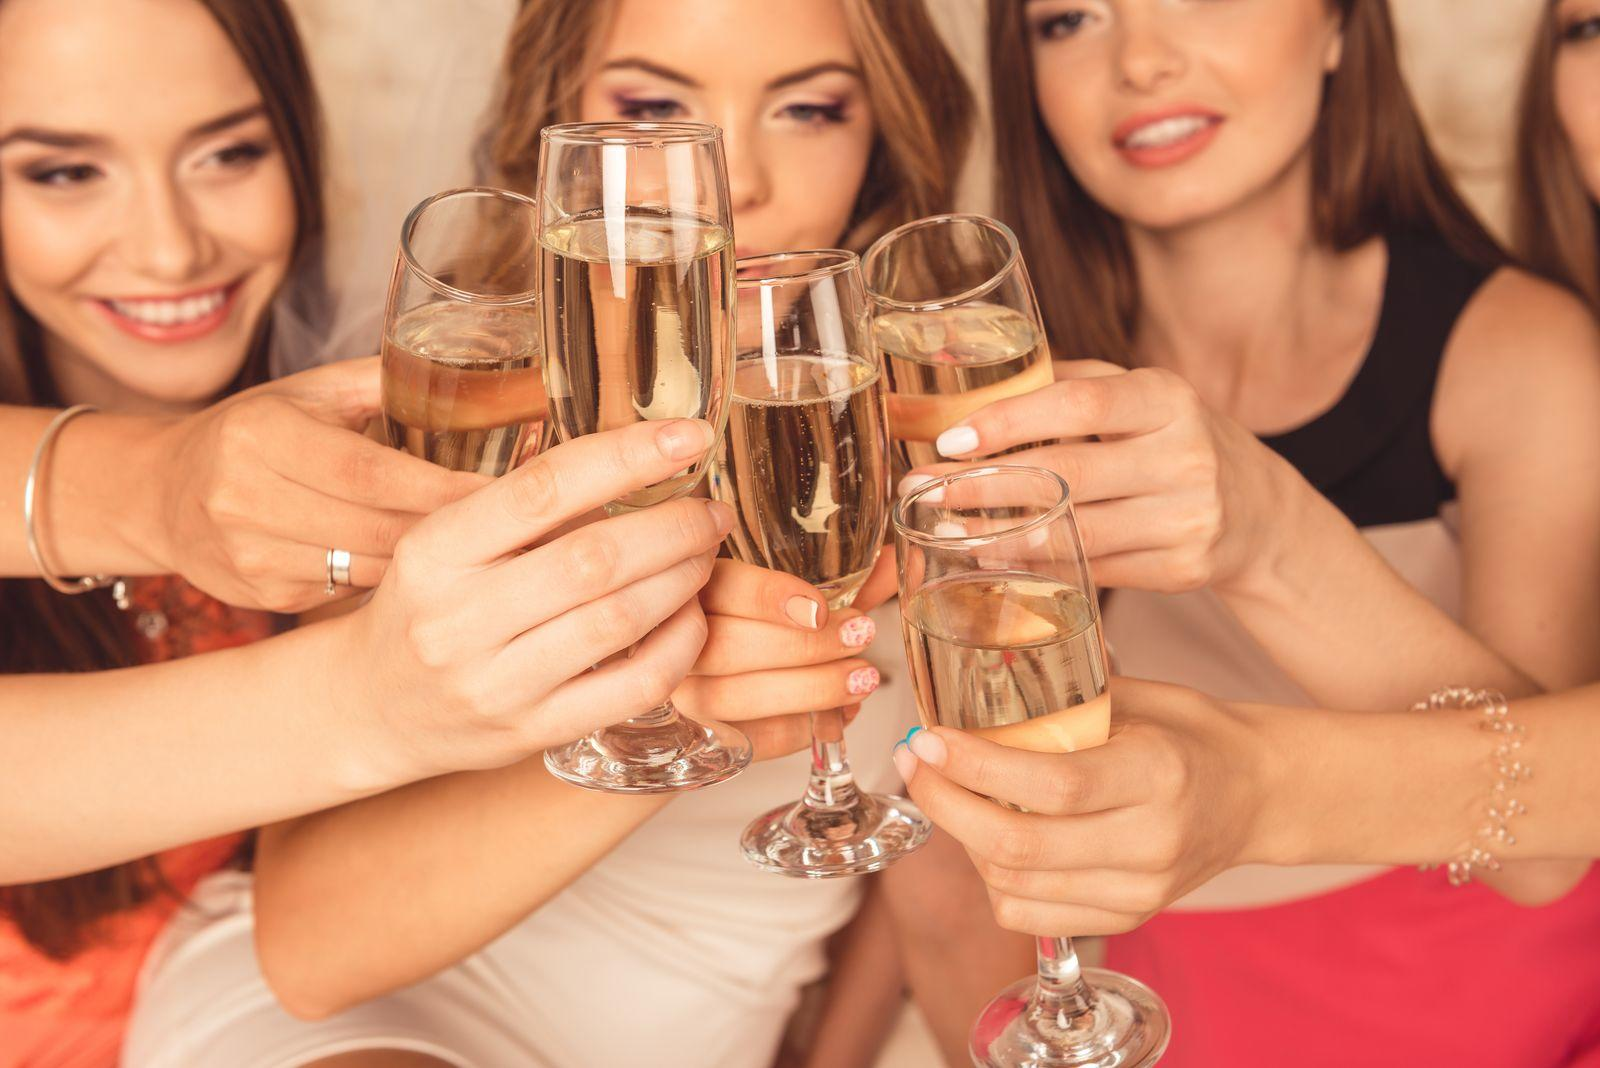 group of women holding up alcohol glasses